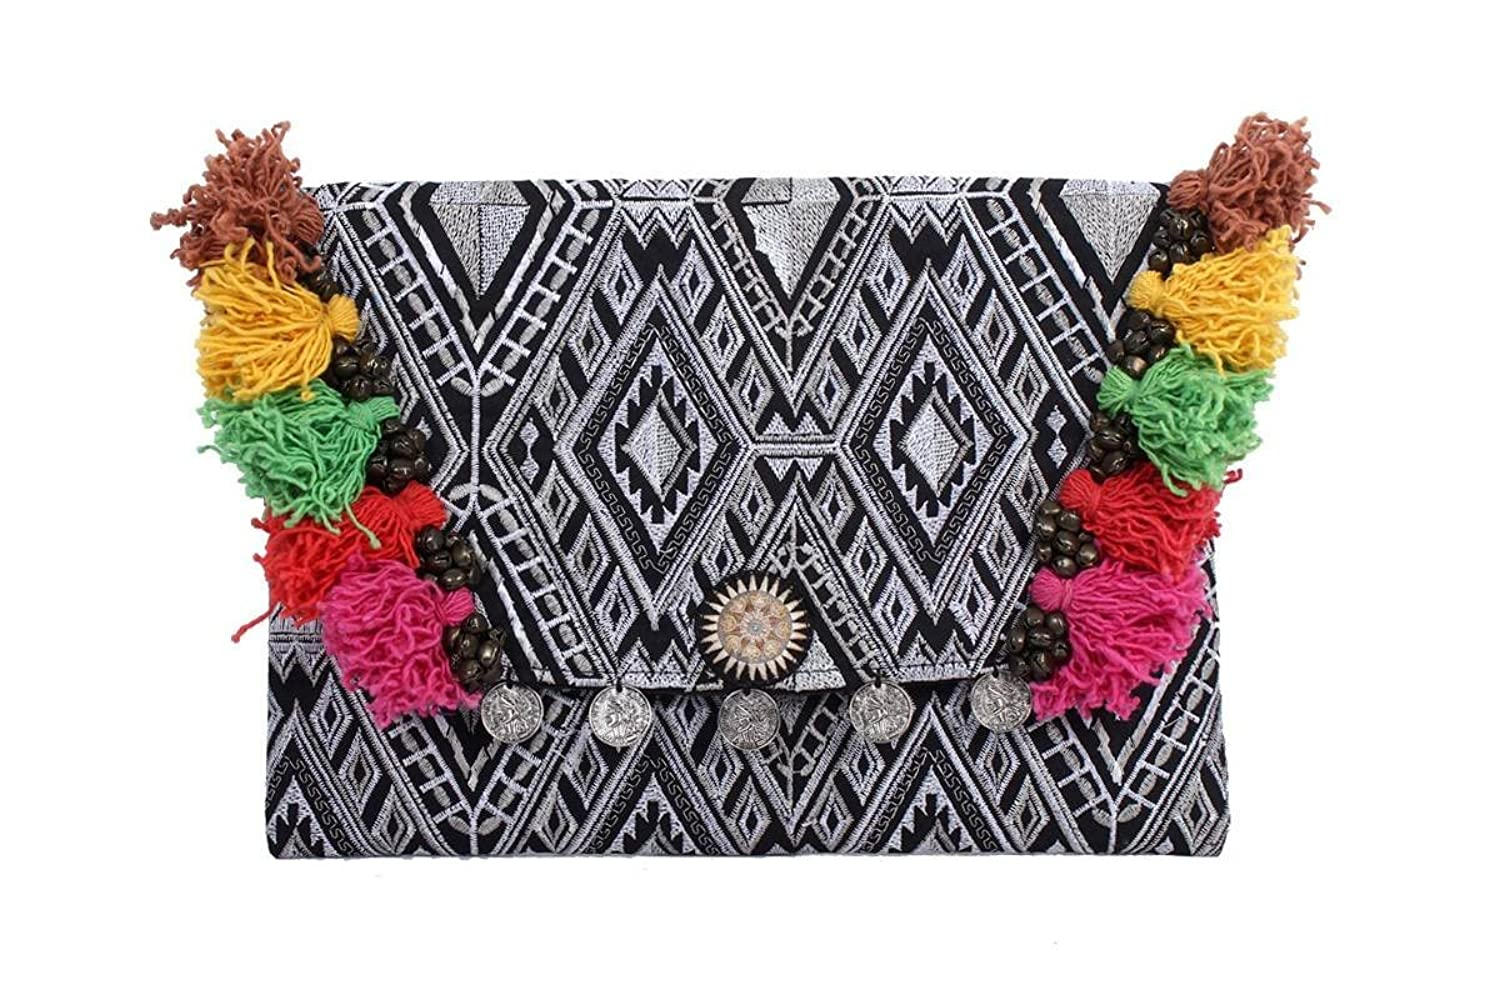 ETHNIC LANNA Handmade Guatemalan Clutch Bag with Coins, Bells and Pom Pom Fringe